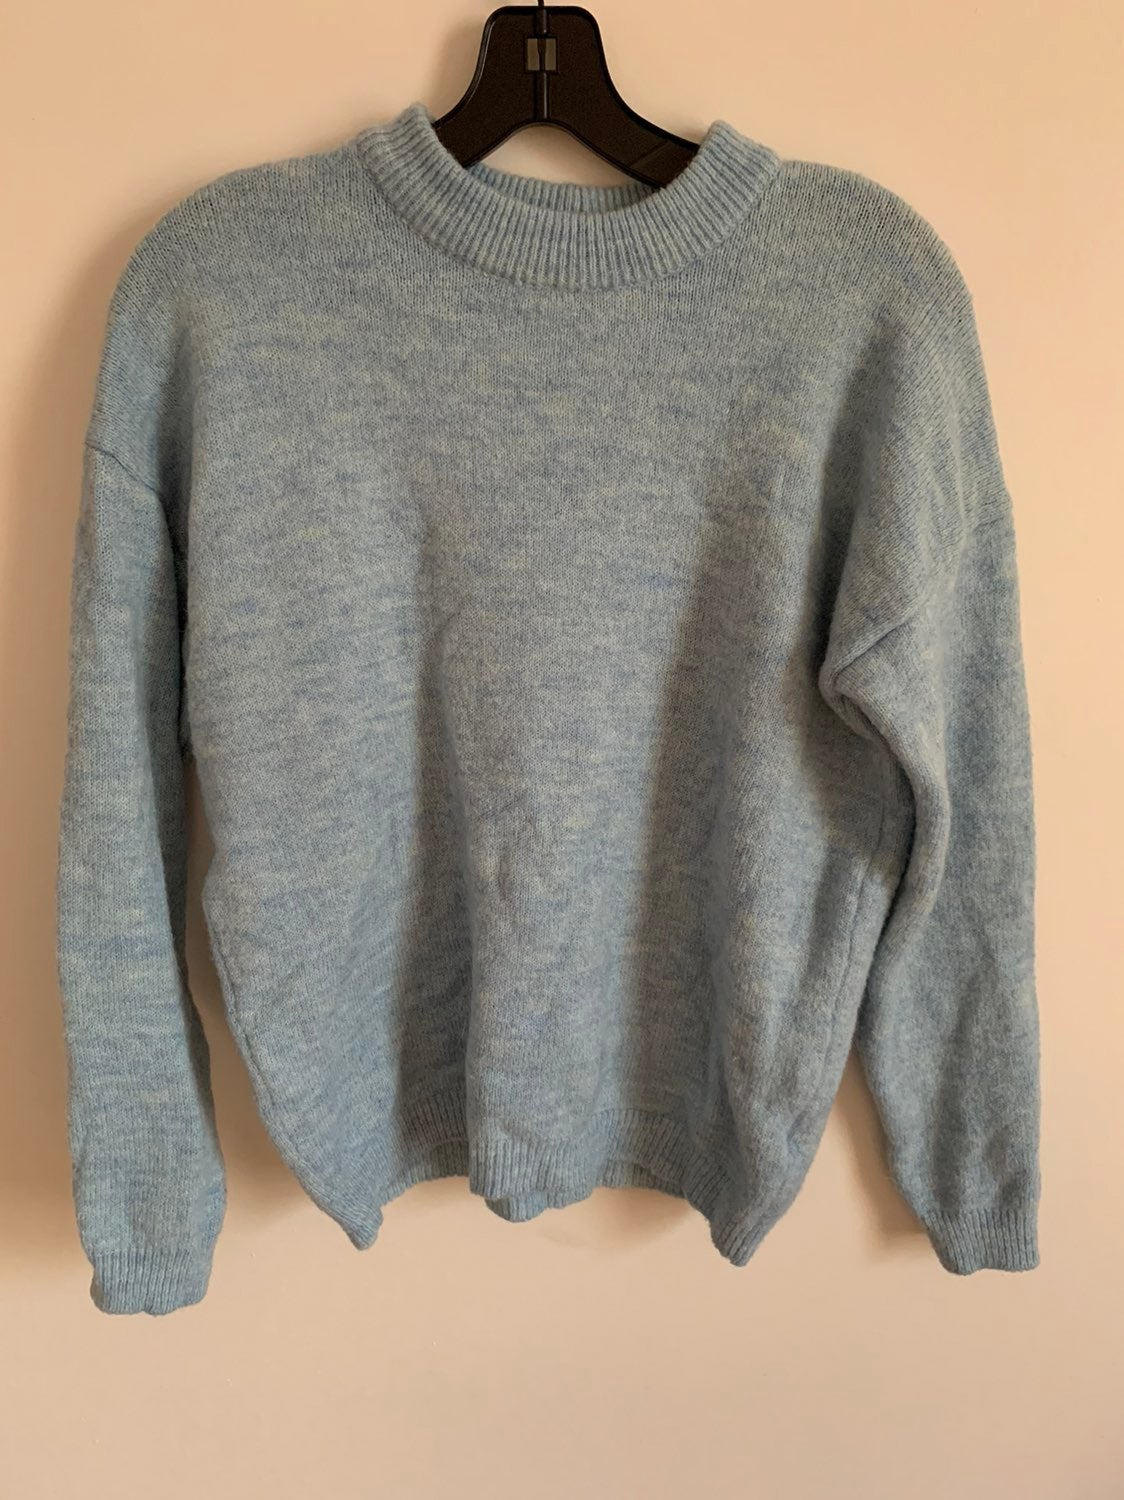 Urban Outfitters Blue Wool Knit Sweater